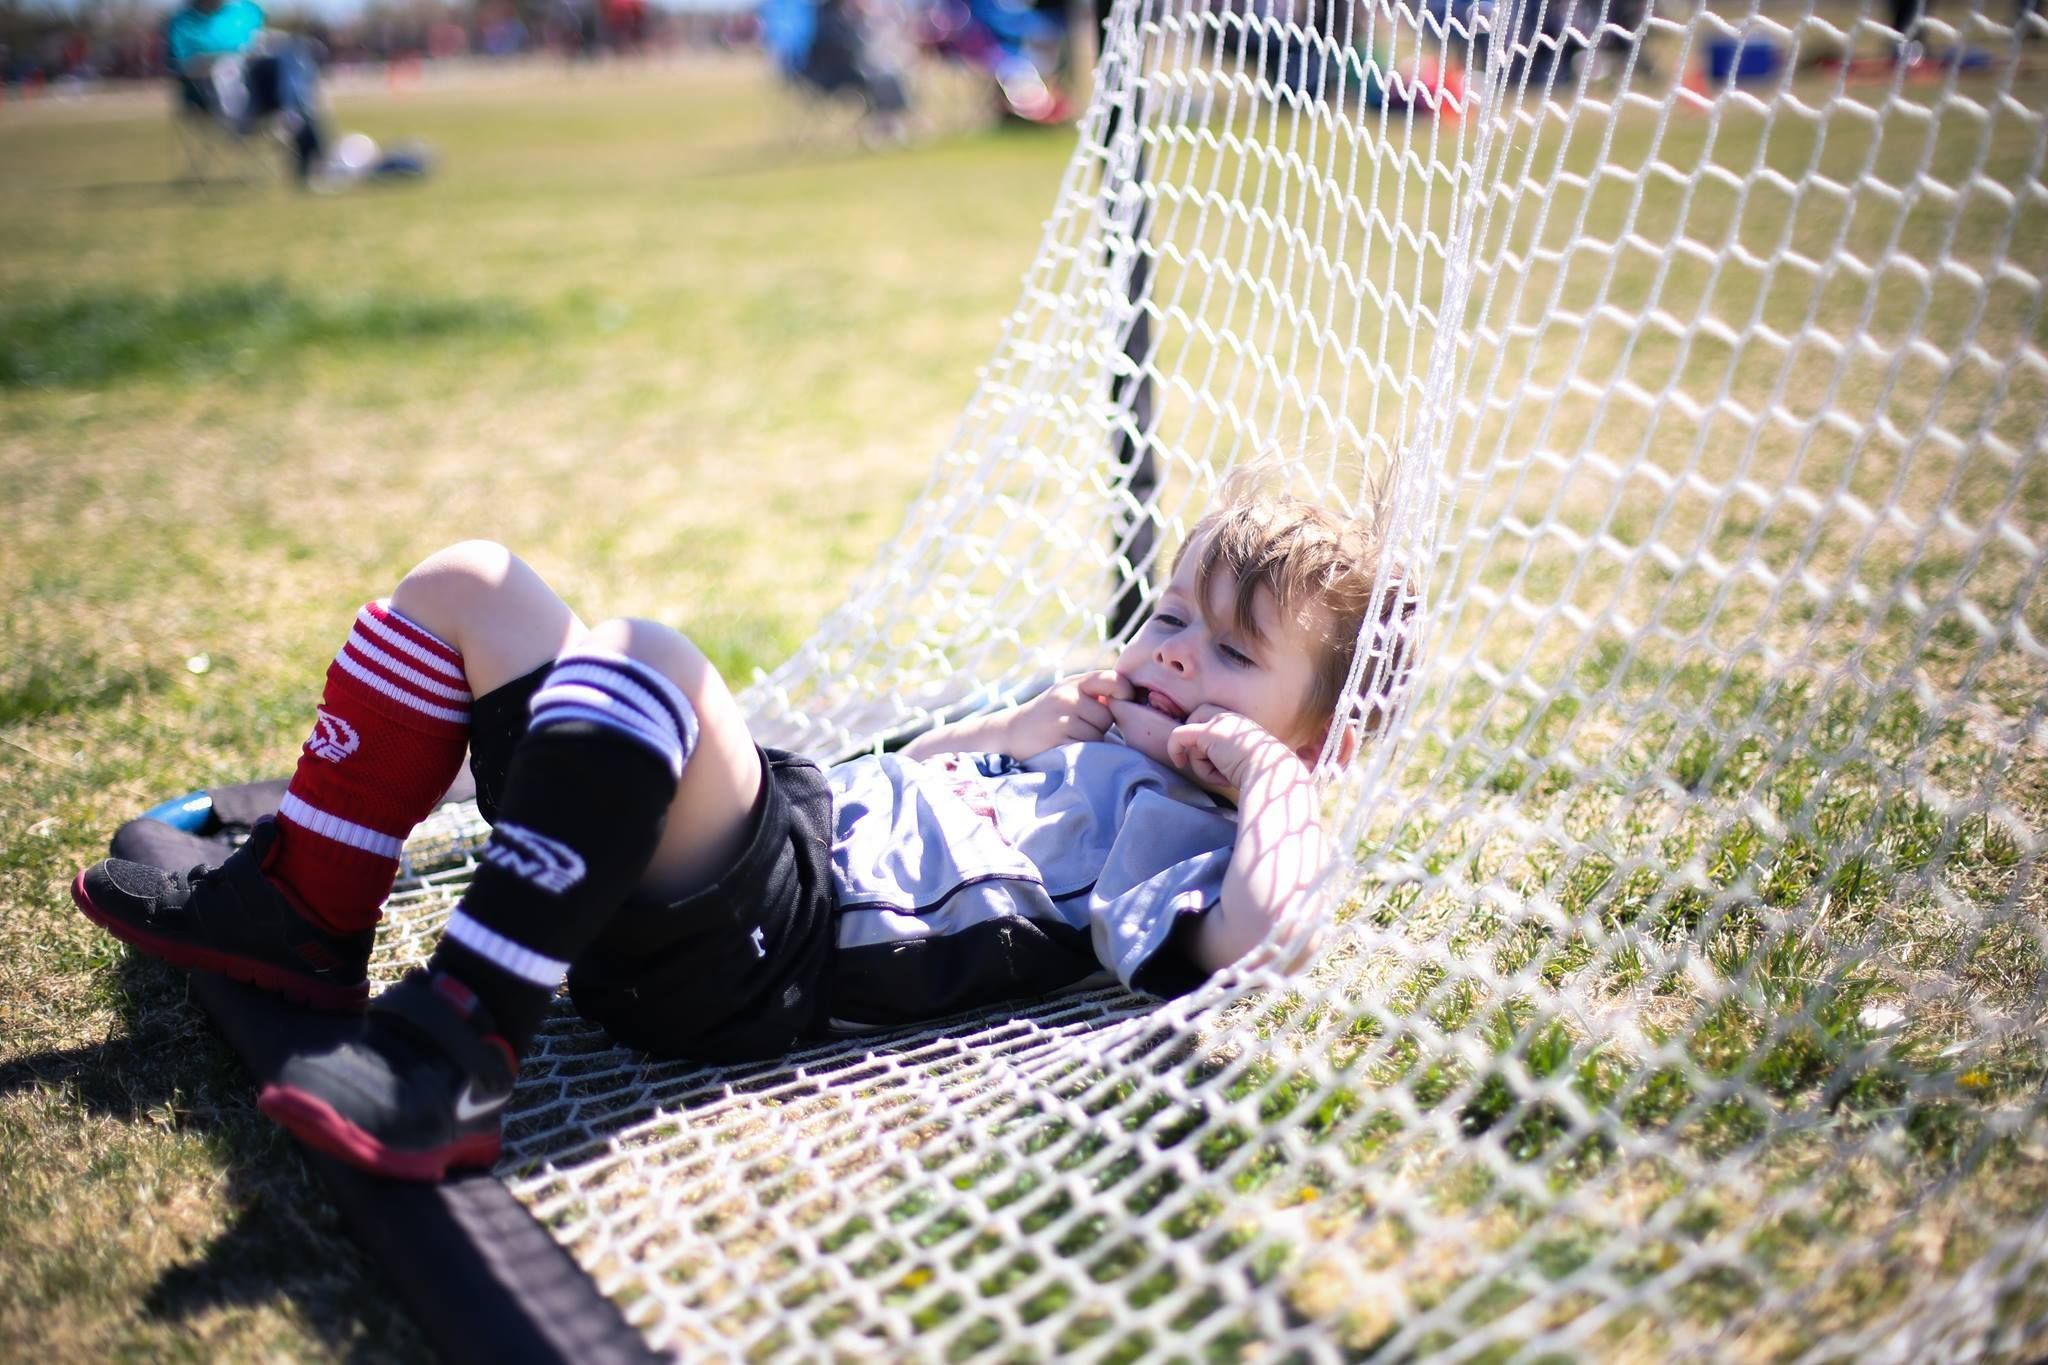 Taking a break from all the i9sports fun youth sports